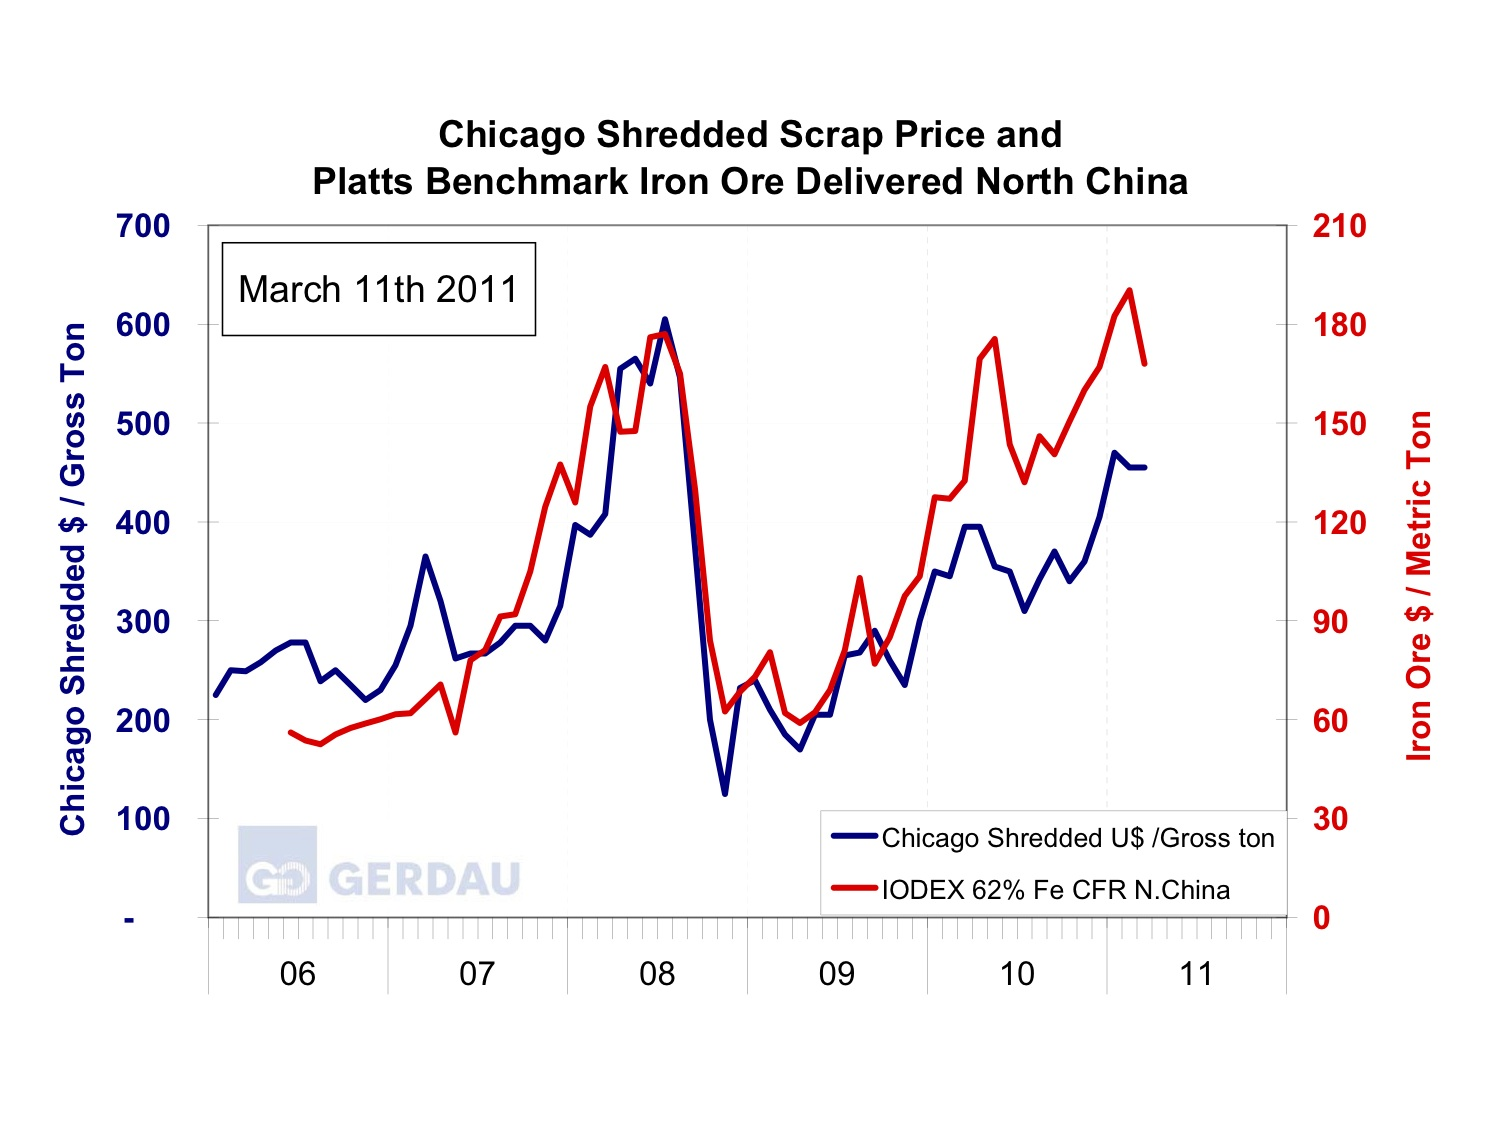 The iron ore scrap correlation does it correlate to steel prices